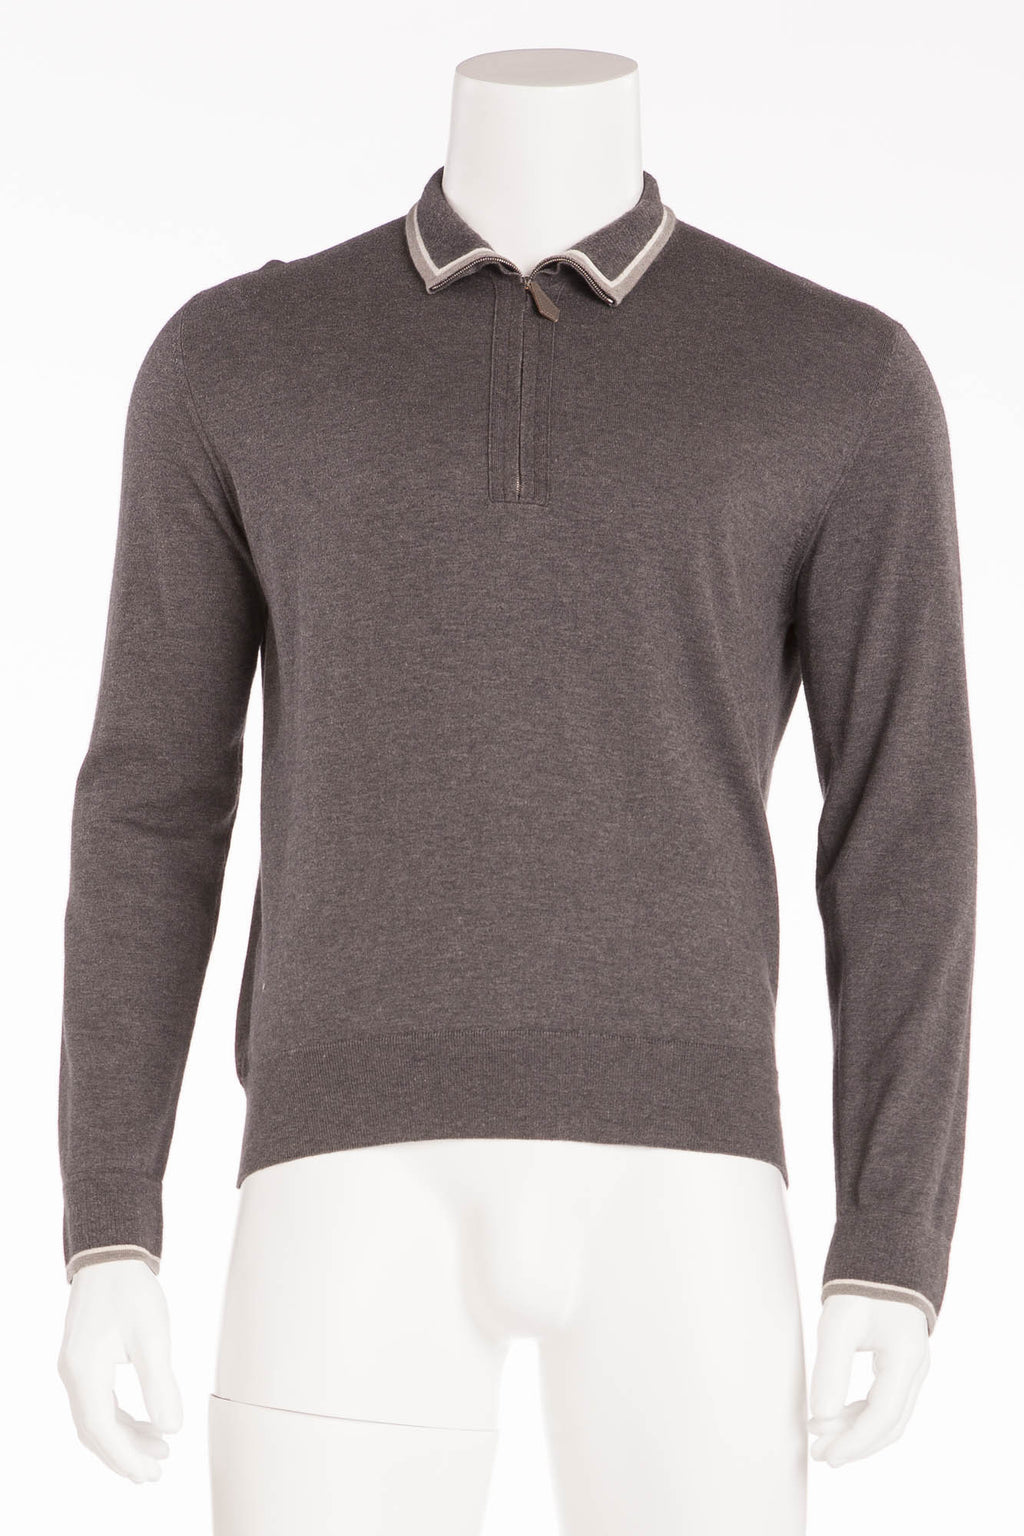 Hermes - Long Sleeve Grey Zip Neck Sweater - L